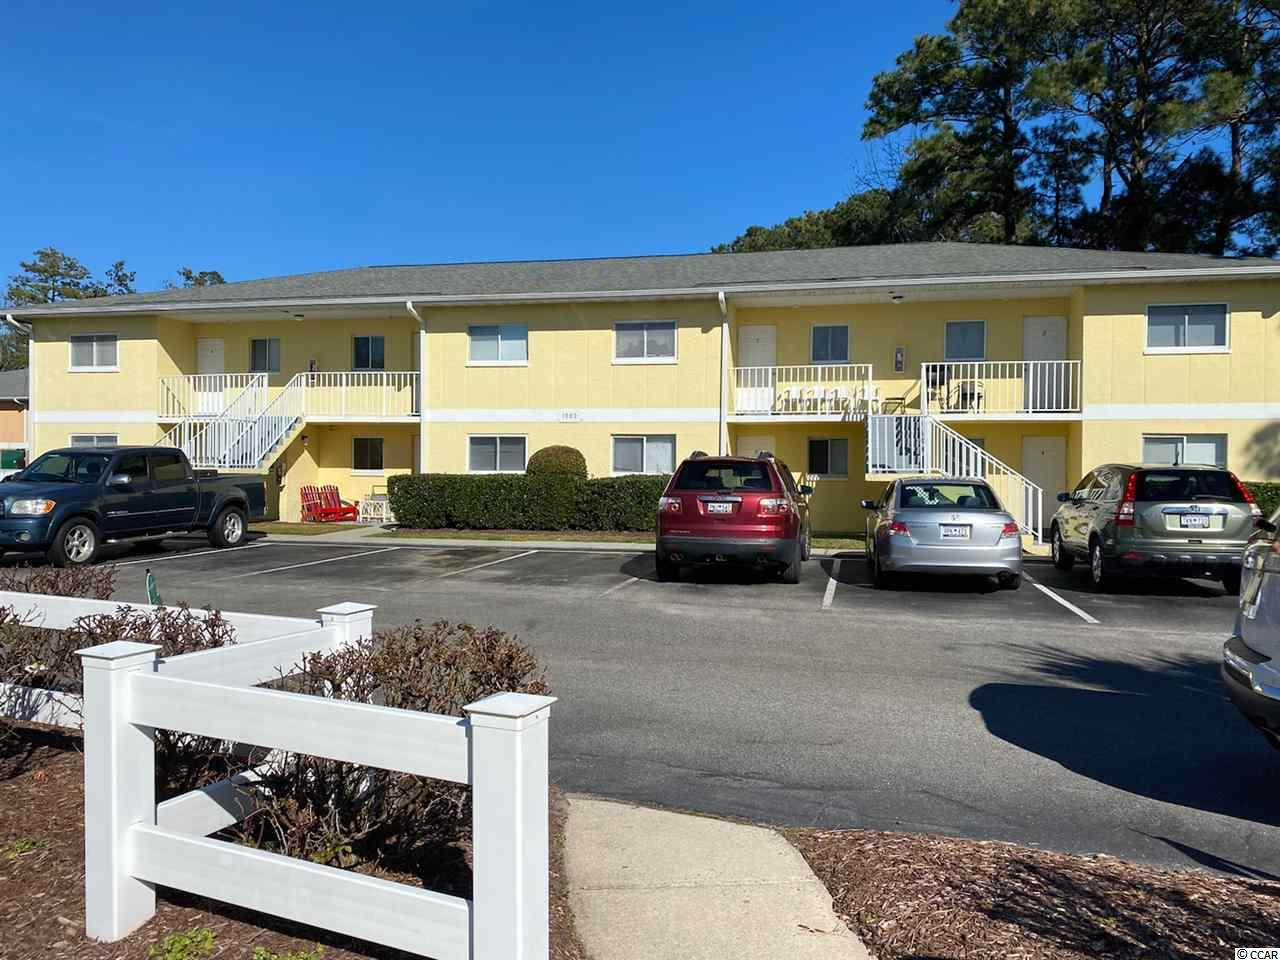 Located in the heart of Surfside Beach and just a short drive or walk to the ocean. Close to post office and grocery store. Unit has screened in porch and a community pool. Great investment property, vacation property or permanent residence.